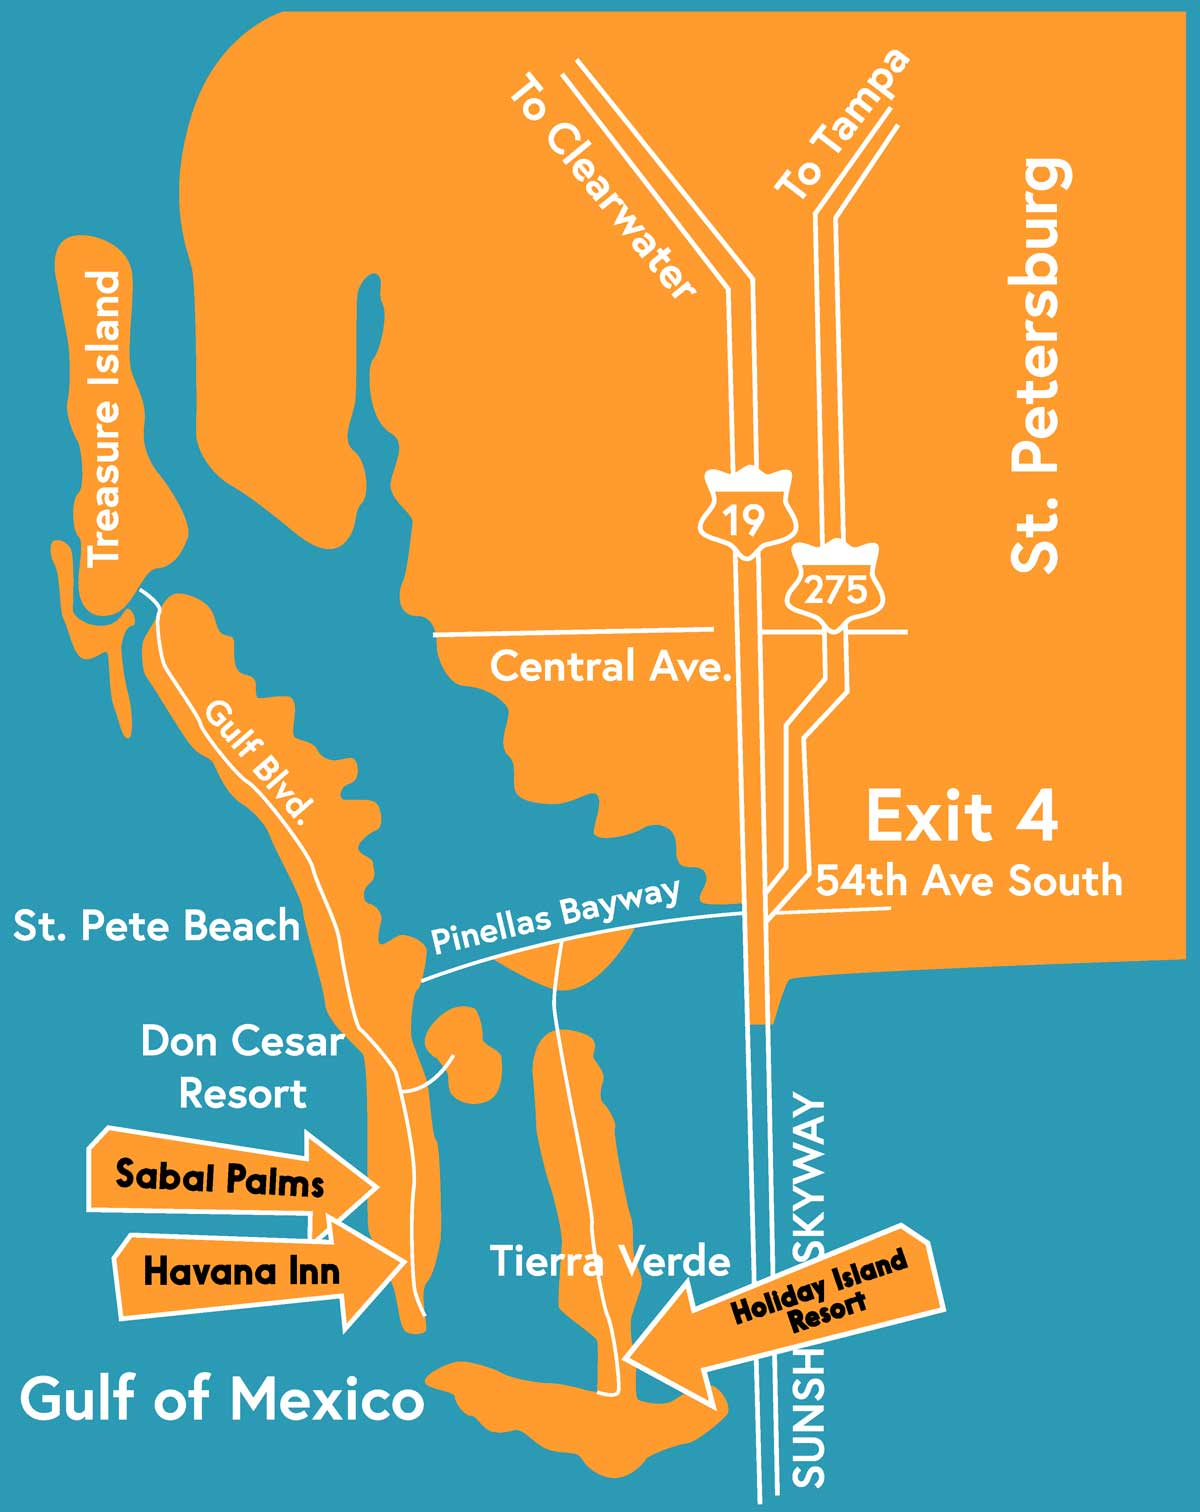 Map to Sabal Palms